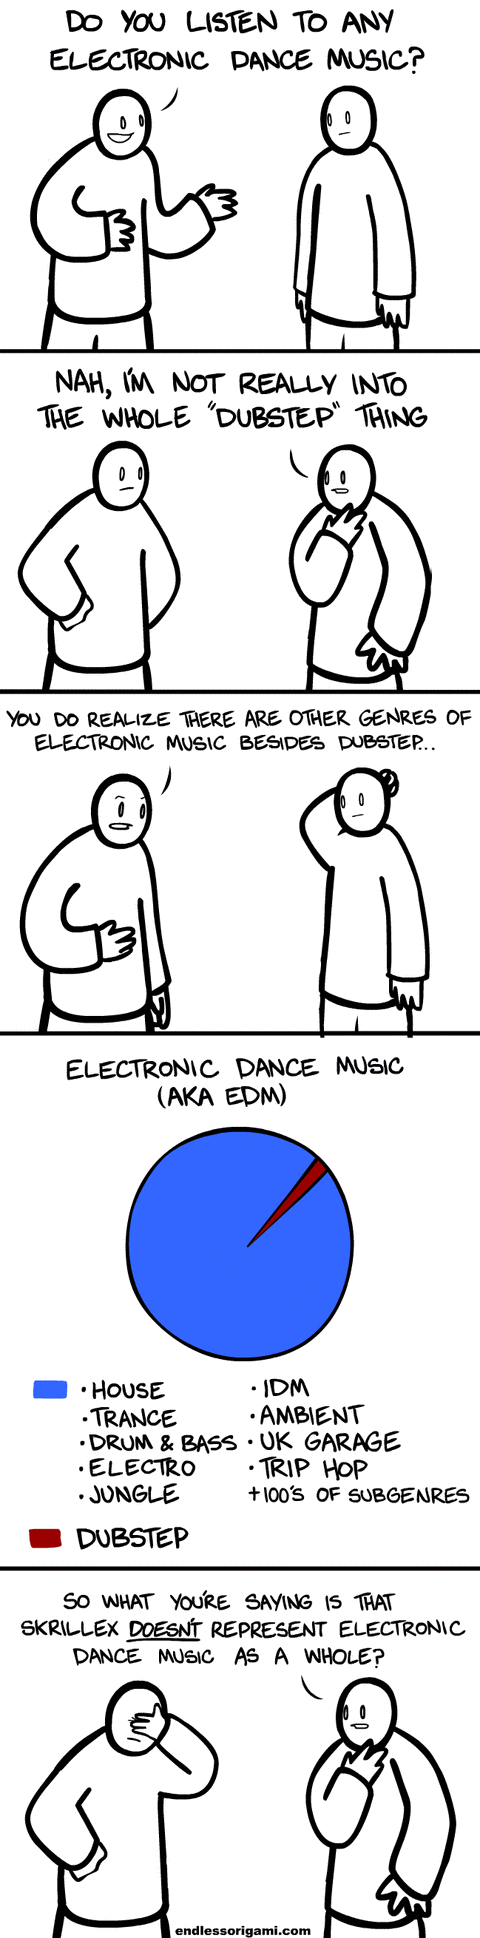 Skrillex, Electronic Music, What's the Diff?